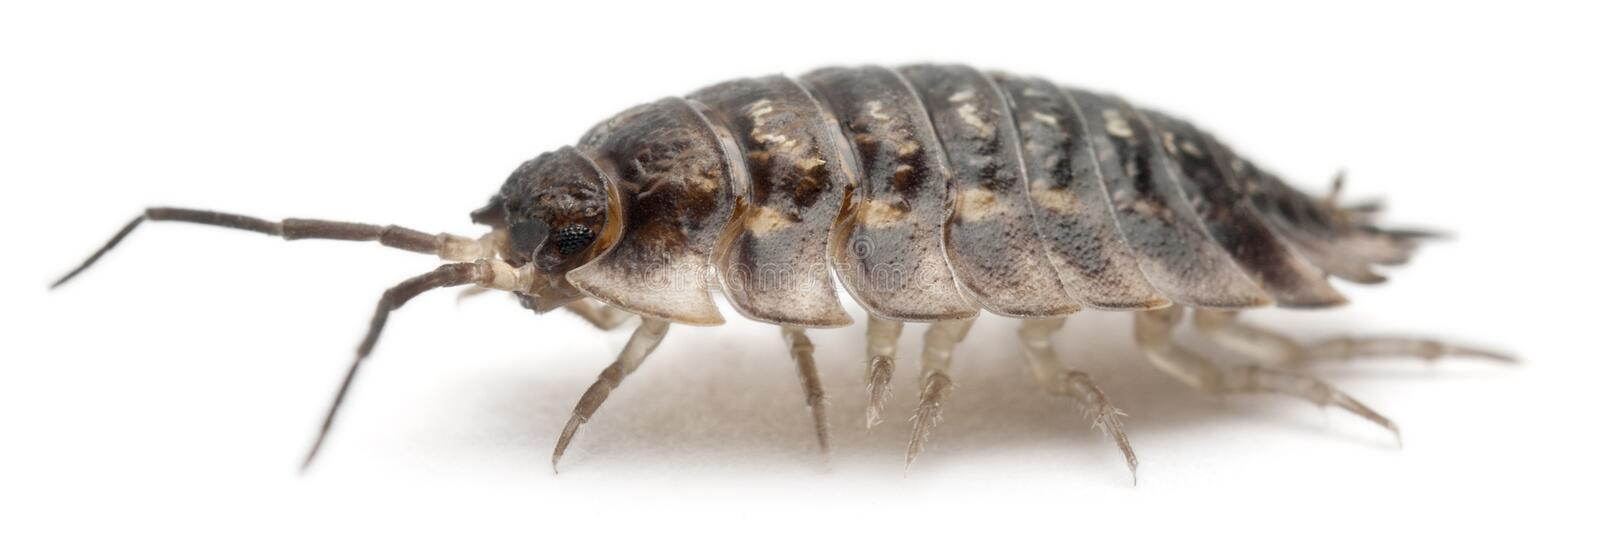 Common woodlouse, Oniscus asellus